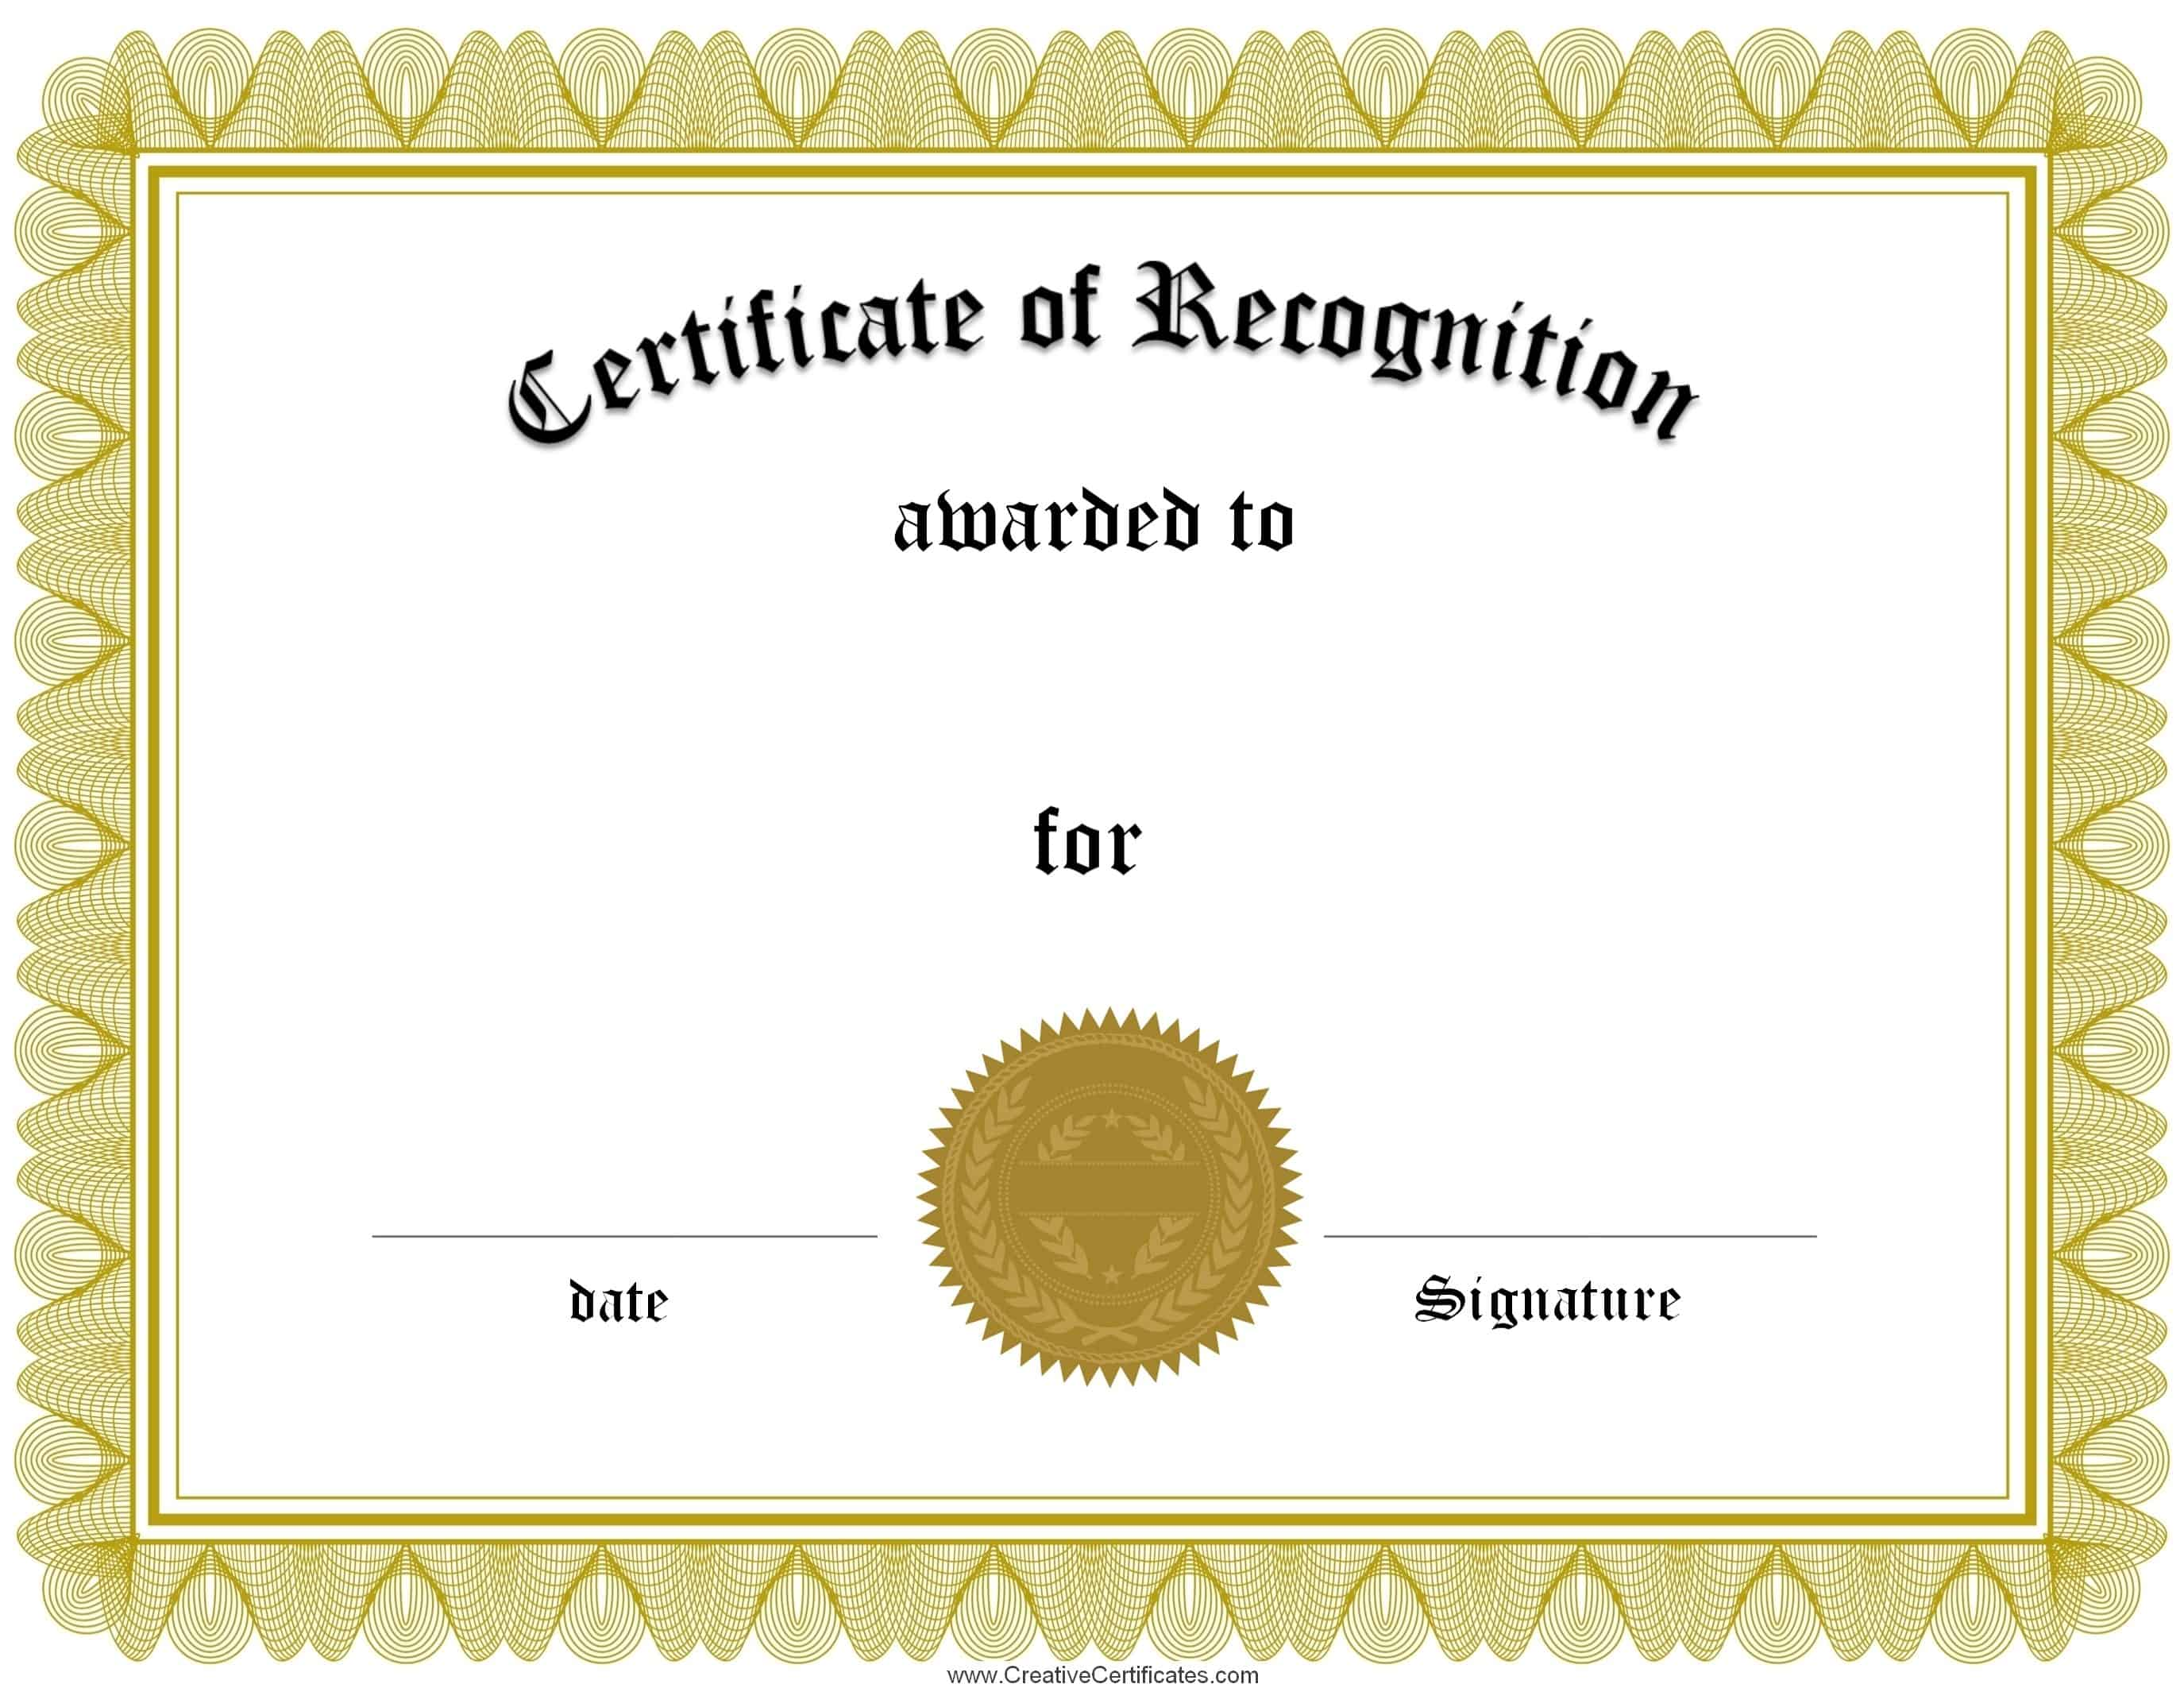 ... Template certificate of recognition - printable certificates